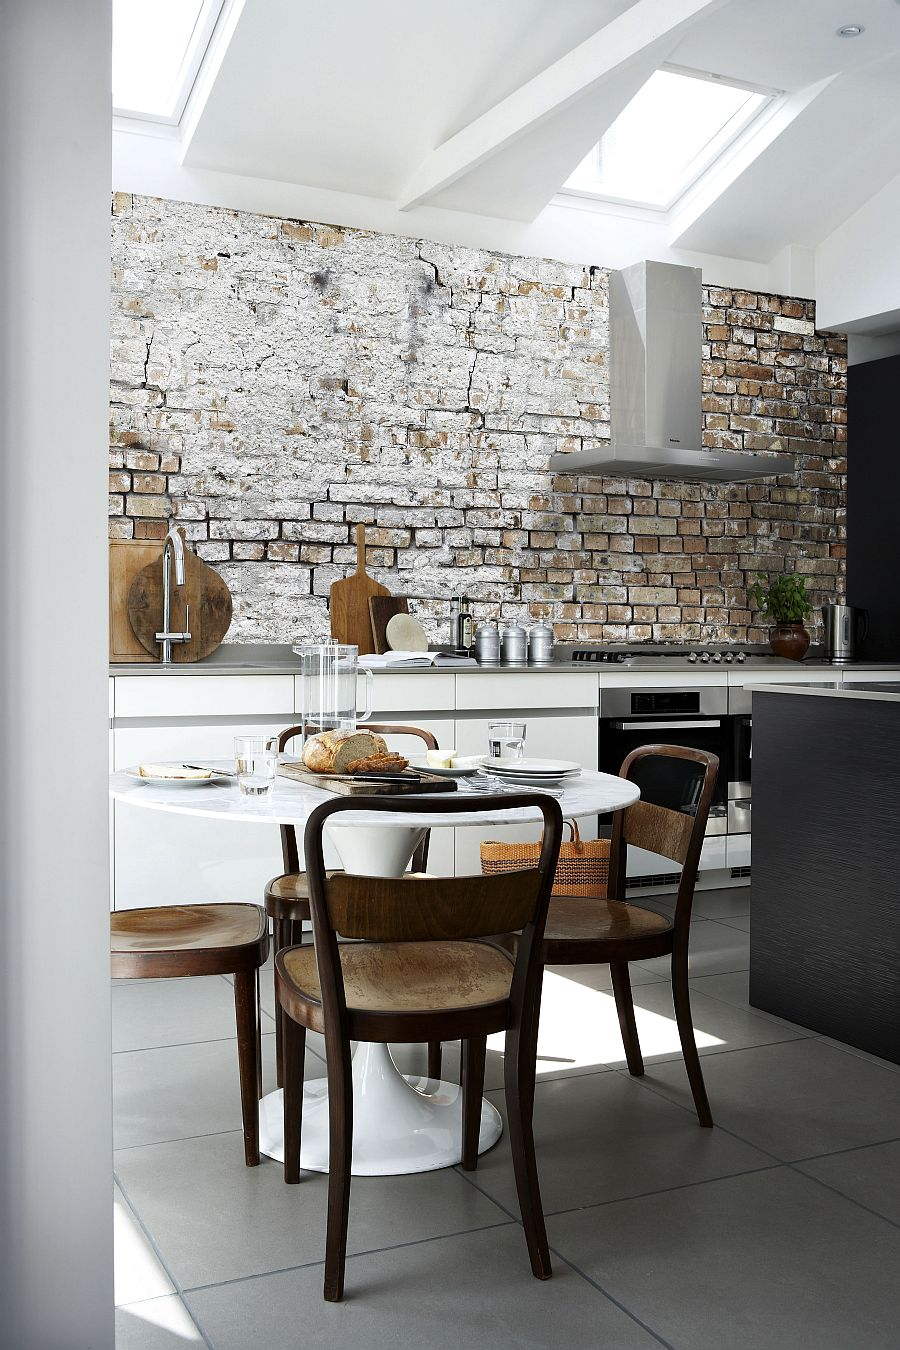 View In Gallery Aged Brick Wall Wallpaper In The Kitchen Combines Two Hot  Design Trends!